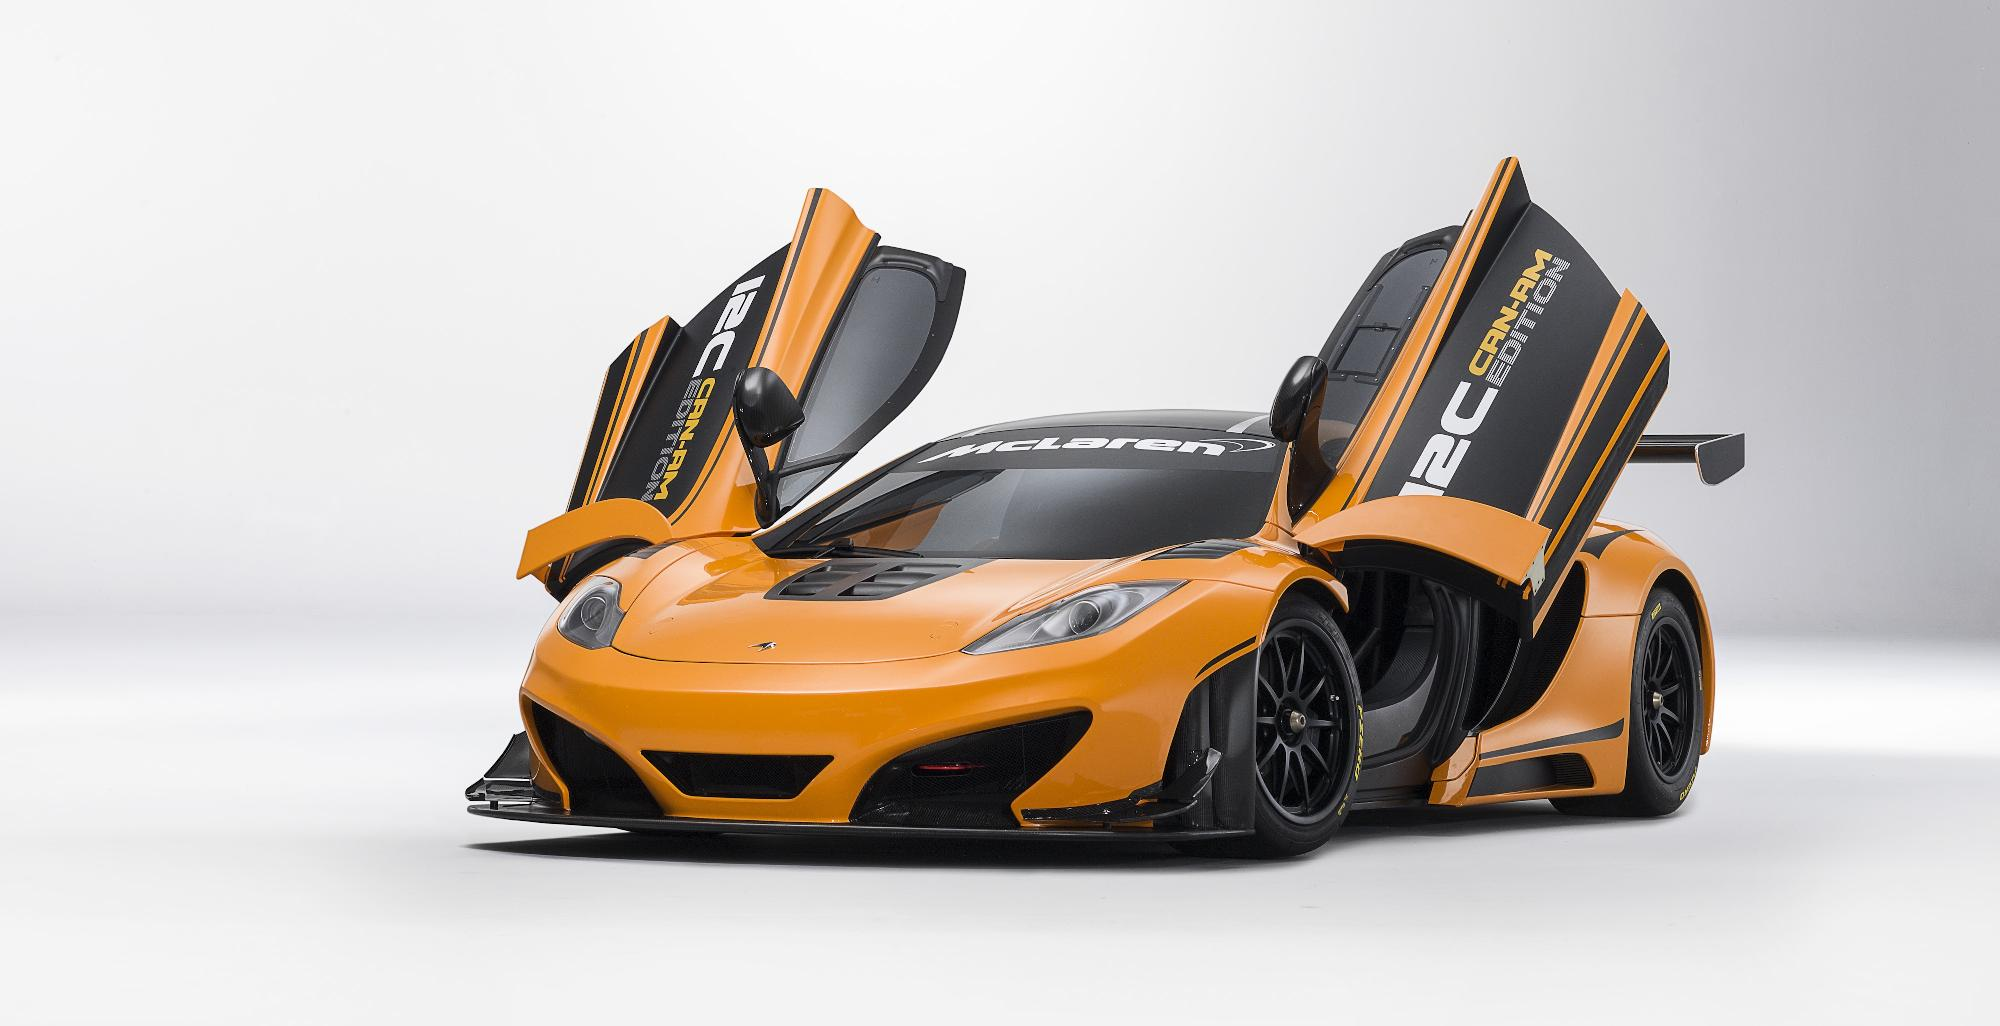 Sports-Cars-McLAREN-12C-CAN-AM-EDITION-RACING-CONCEPT